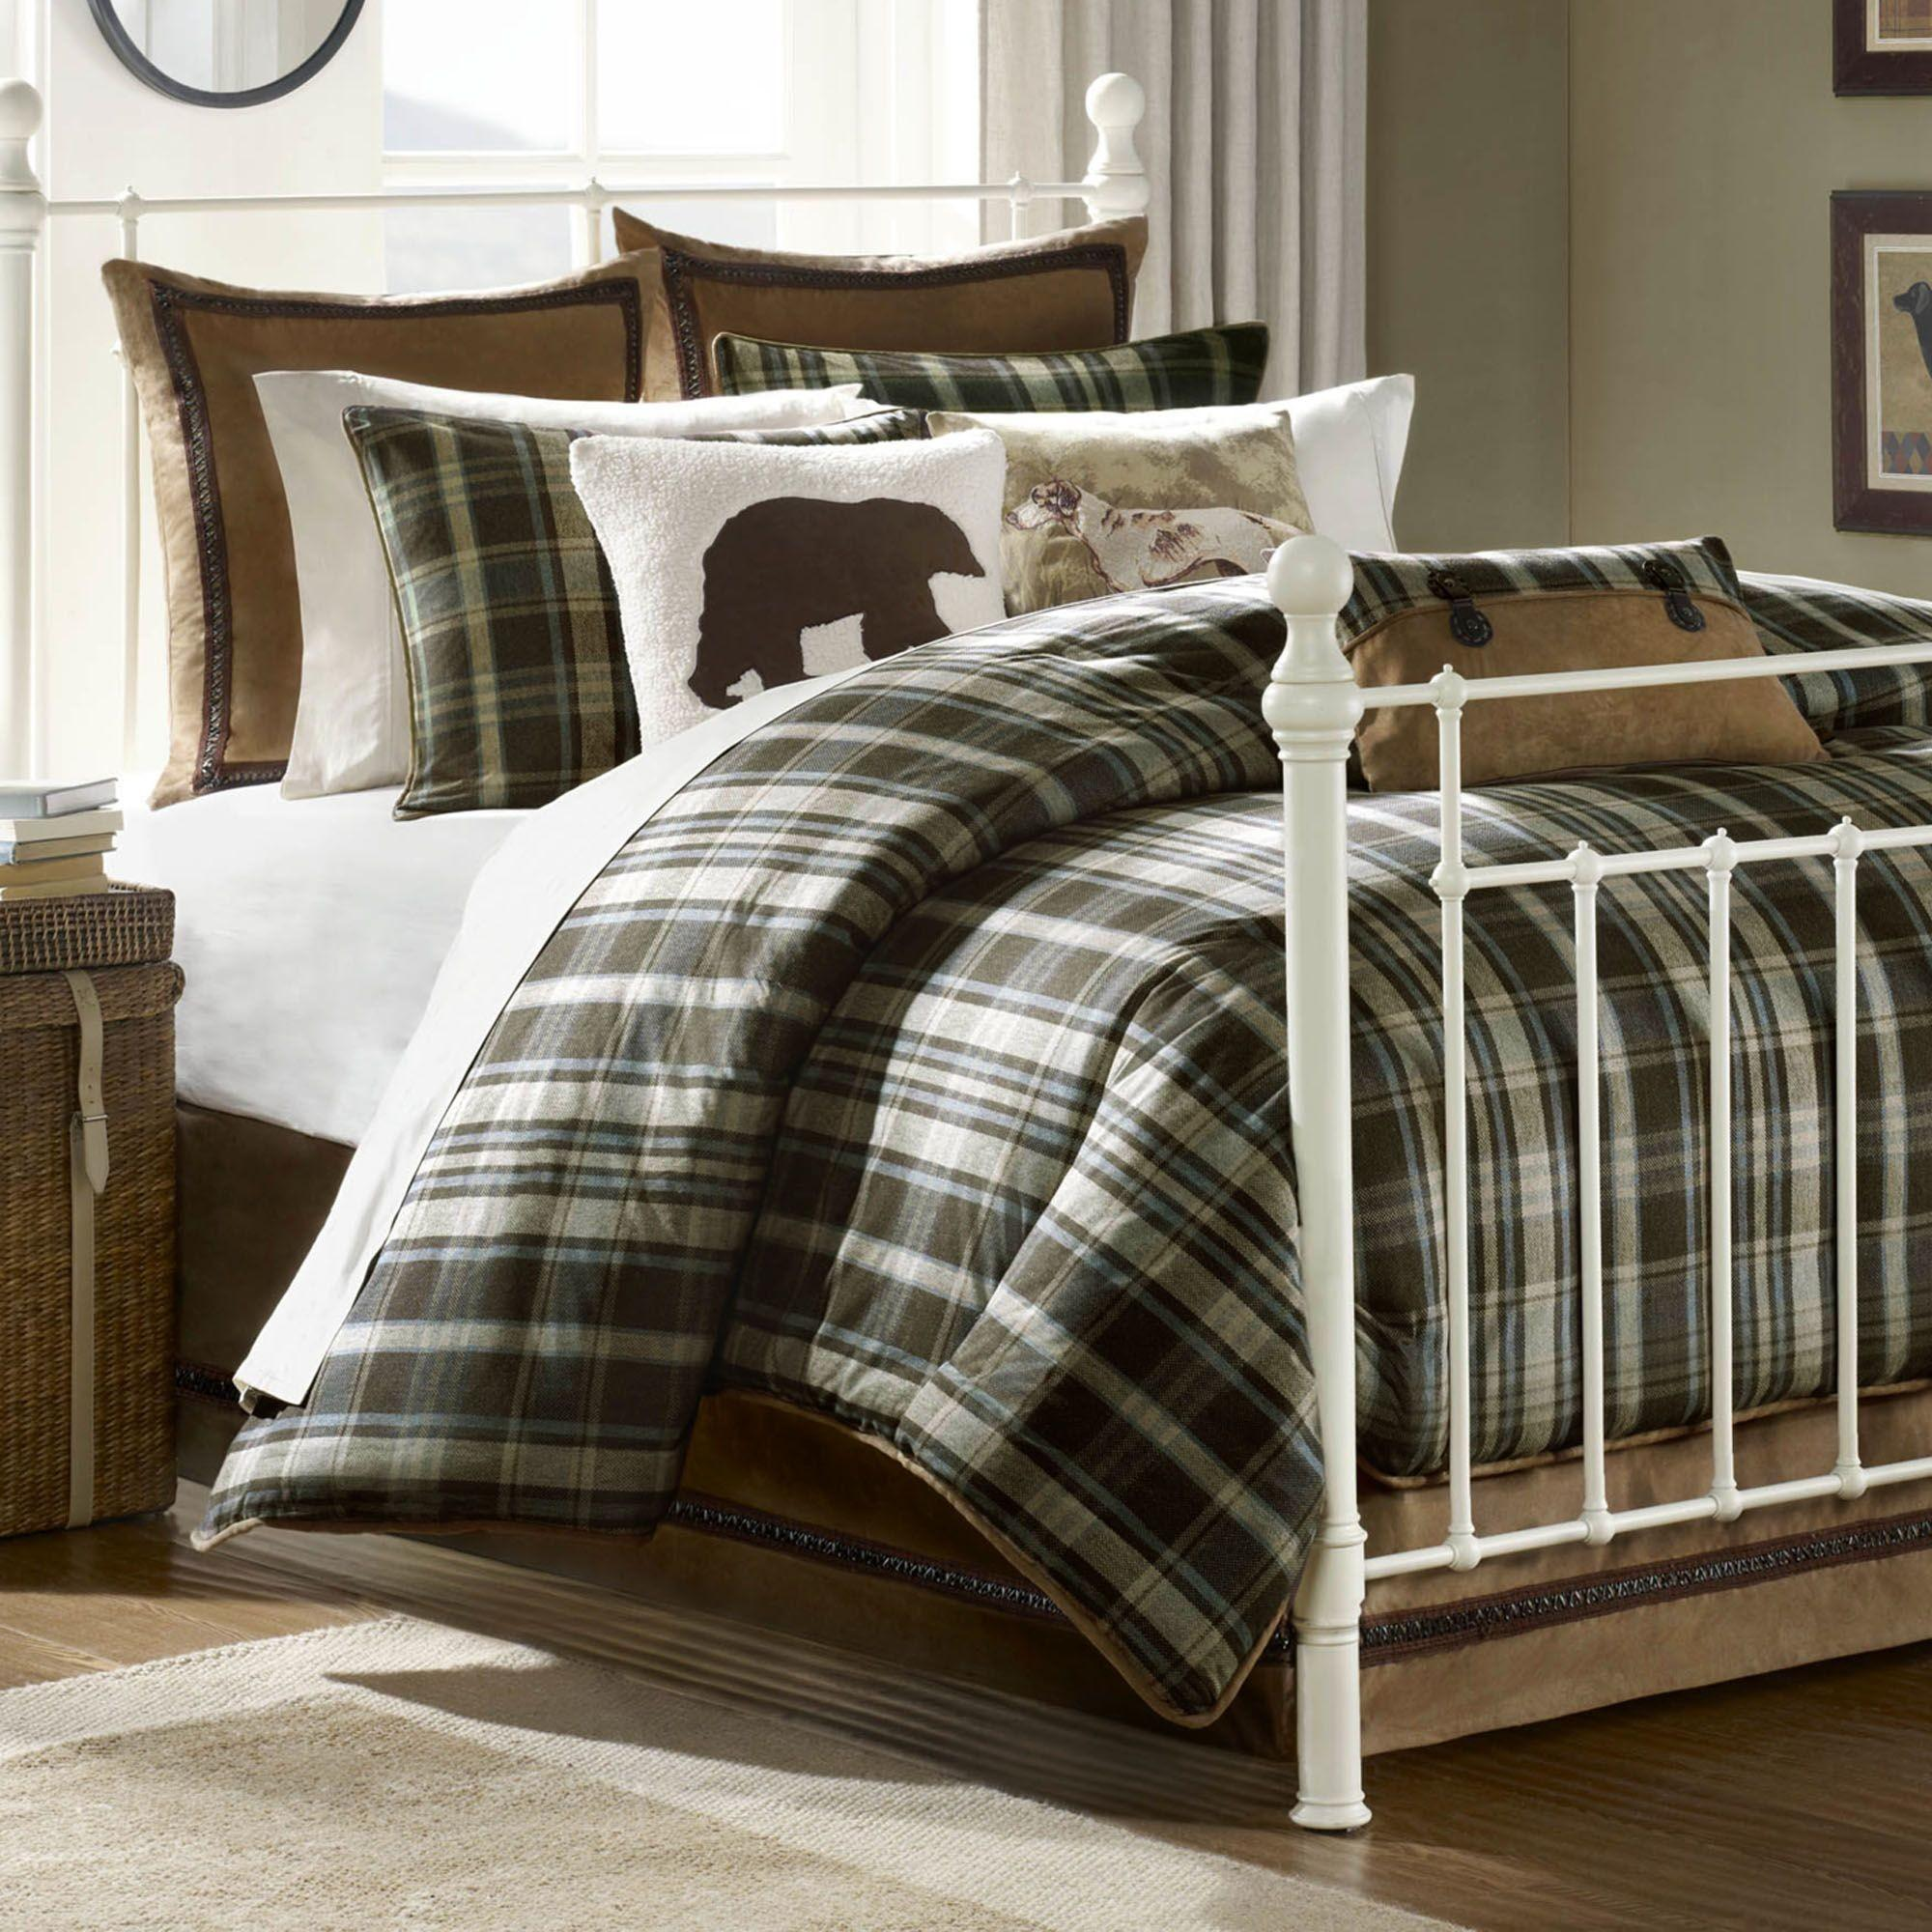 Bedroom Awesome White Beds Design Plaid Comforter